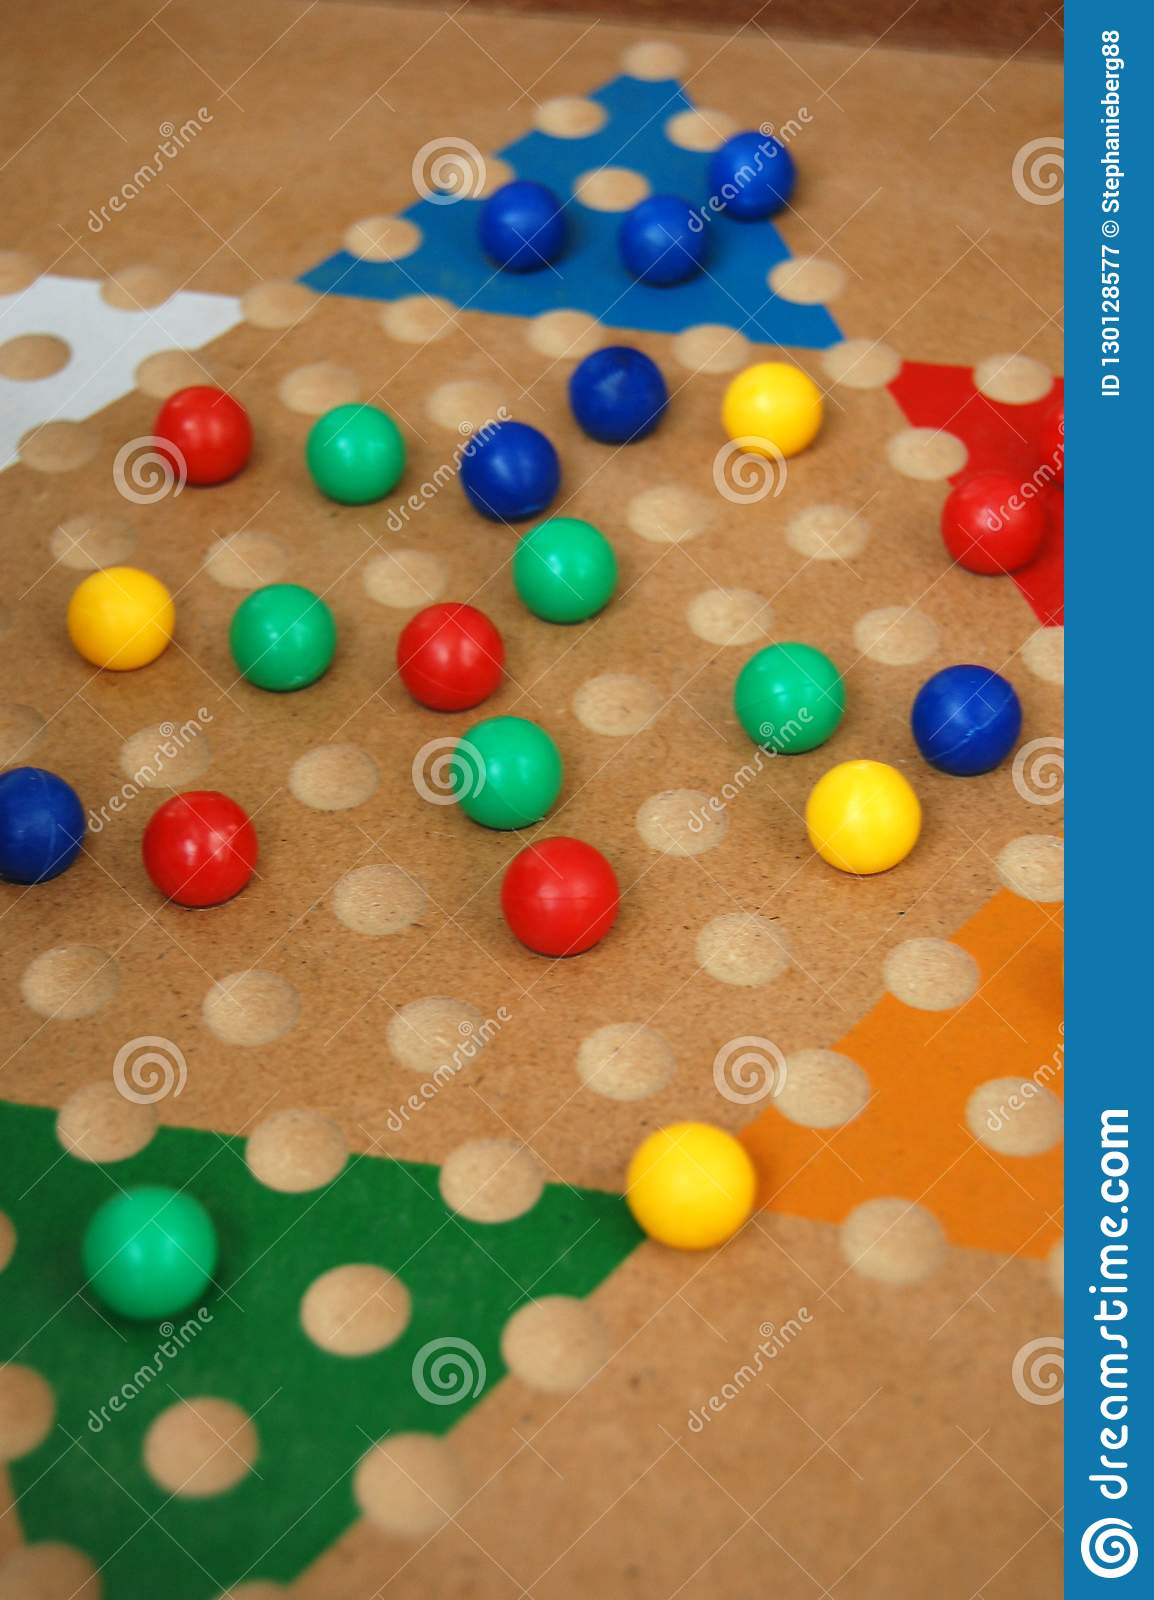 Chinese Checkers Board Game Fun